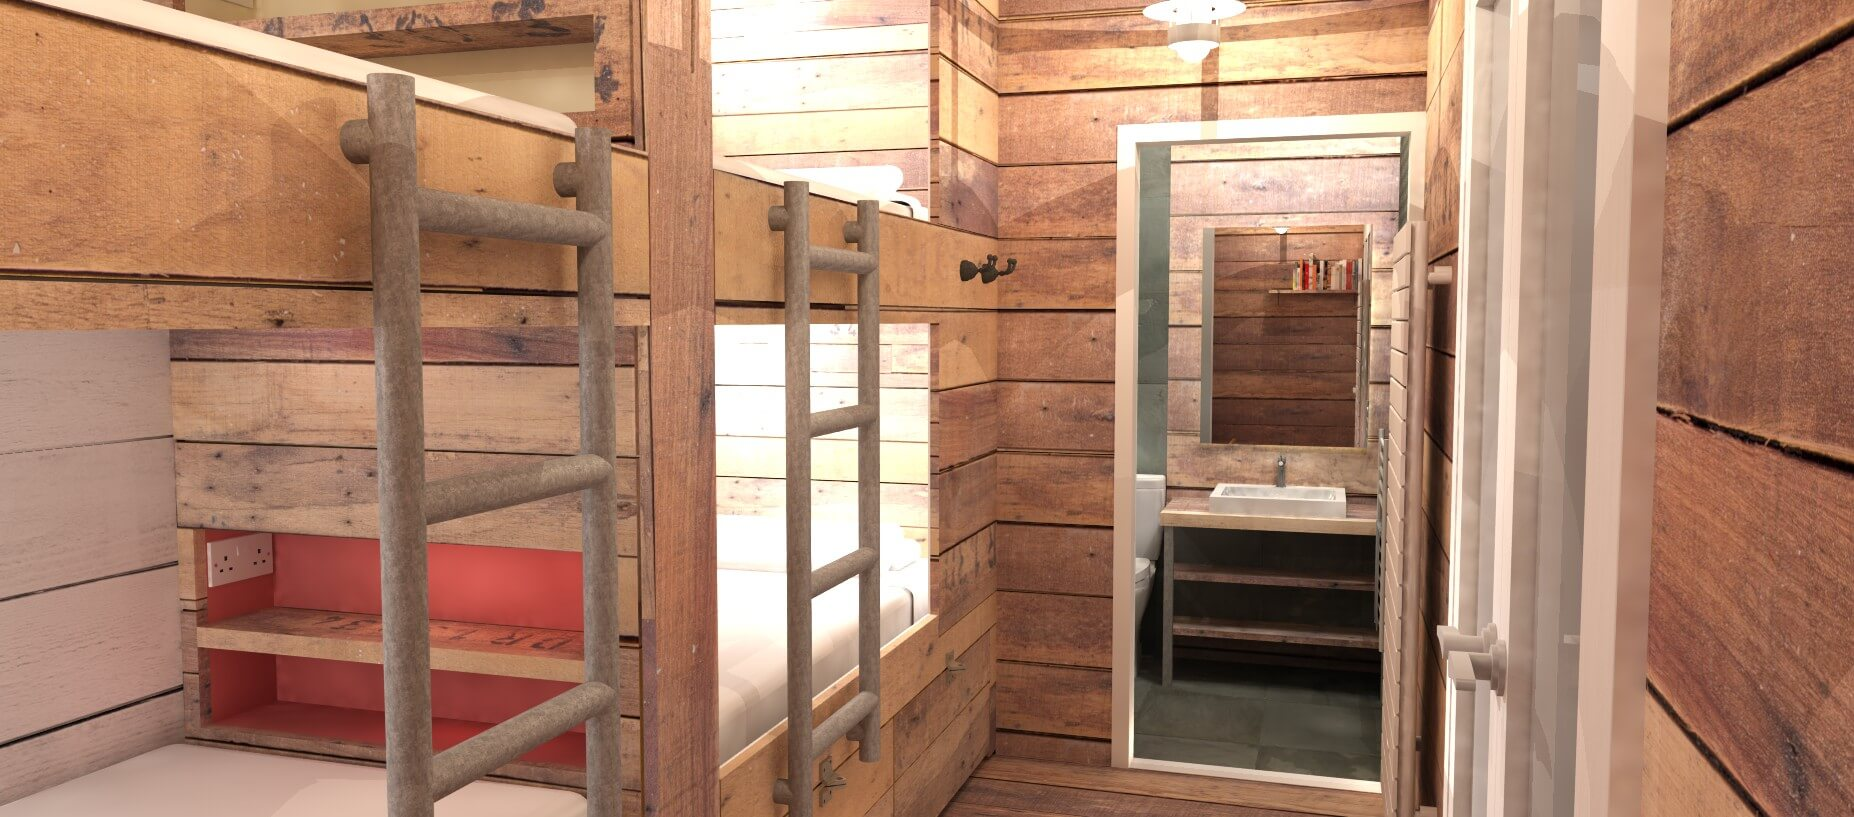 Student Accommodation Bunk Beds with Ladders